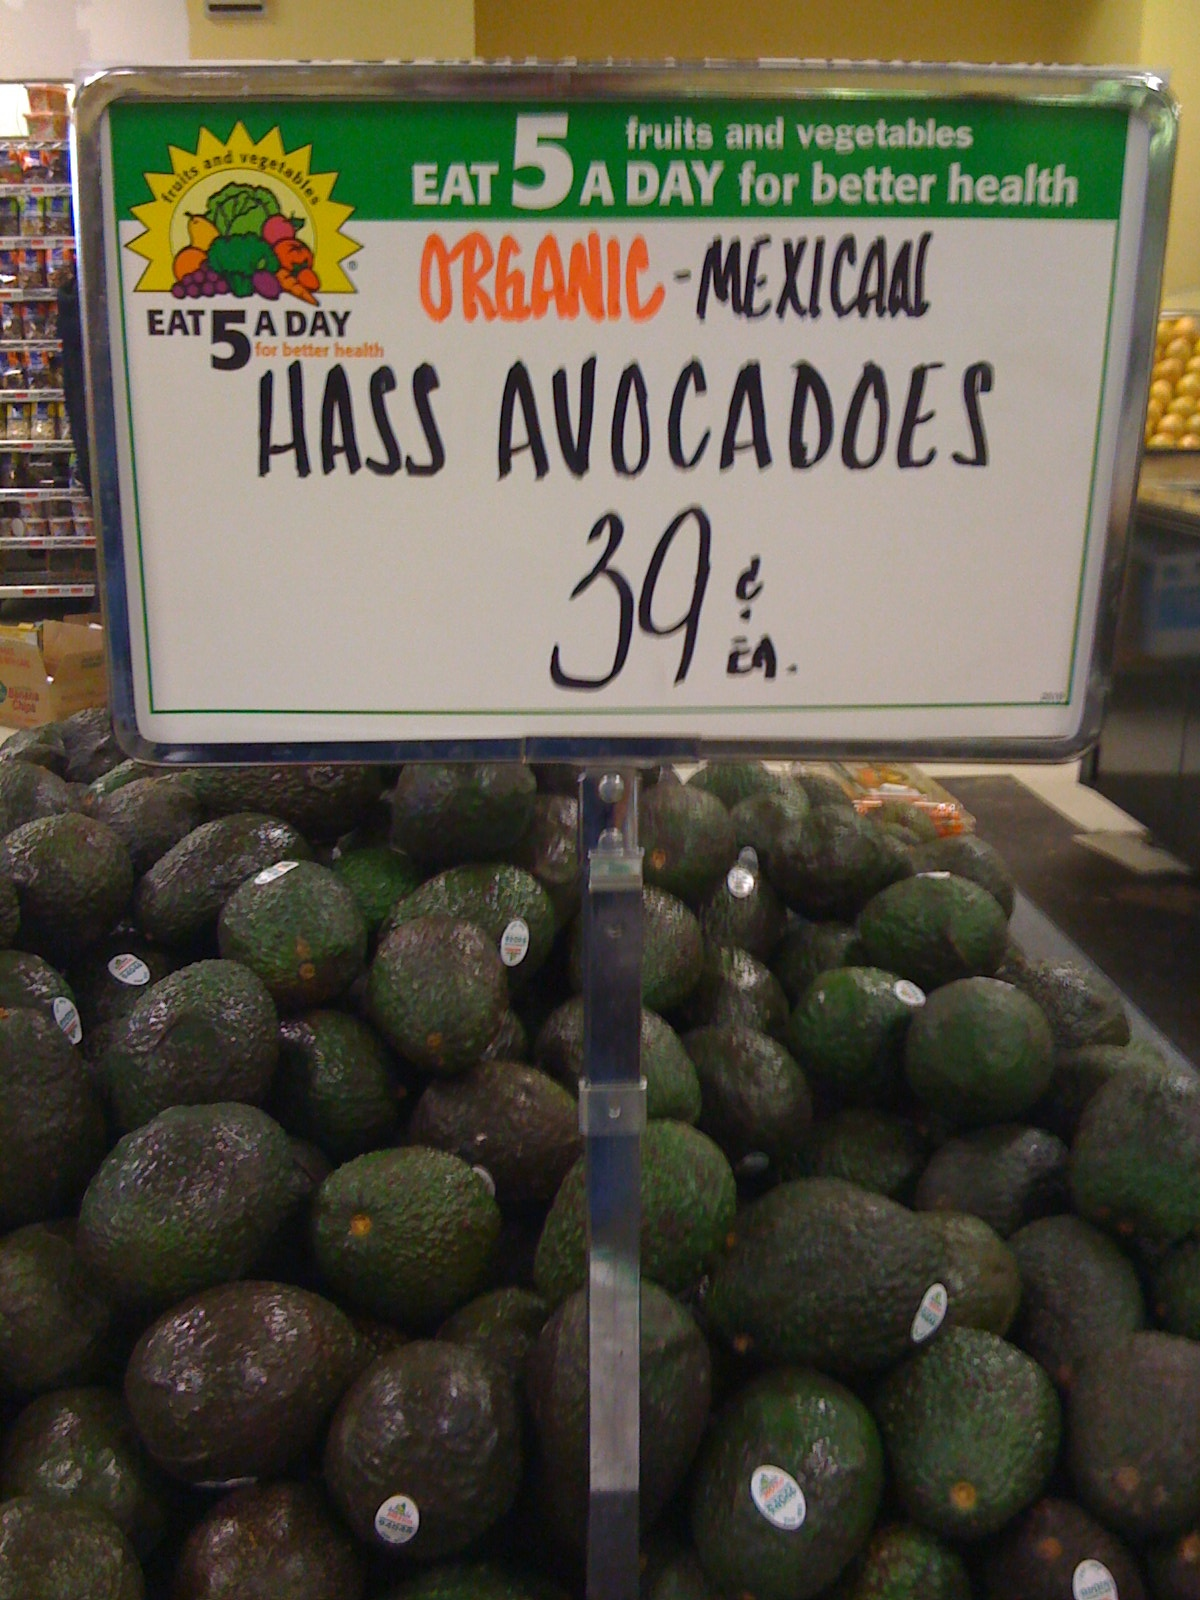 Avocados in a grocery store